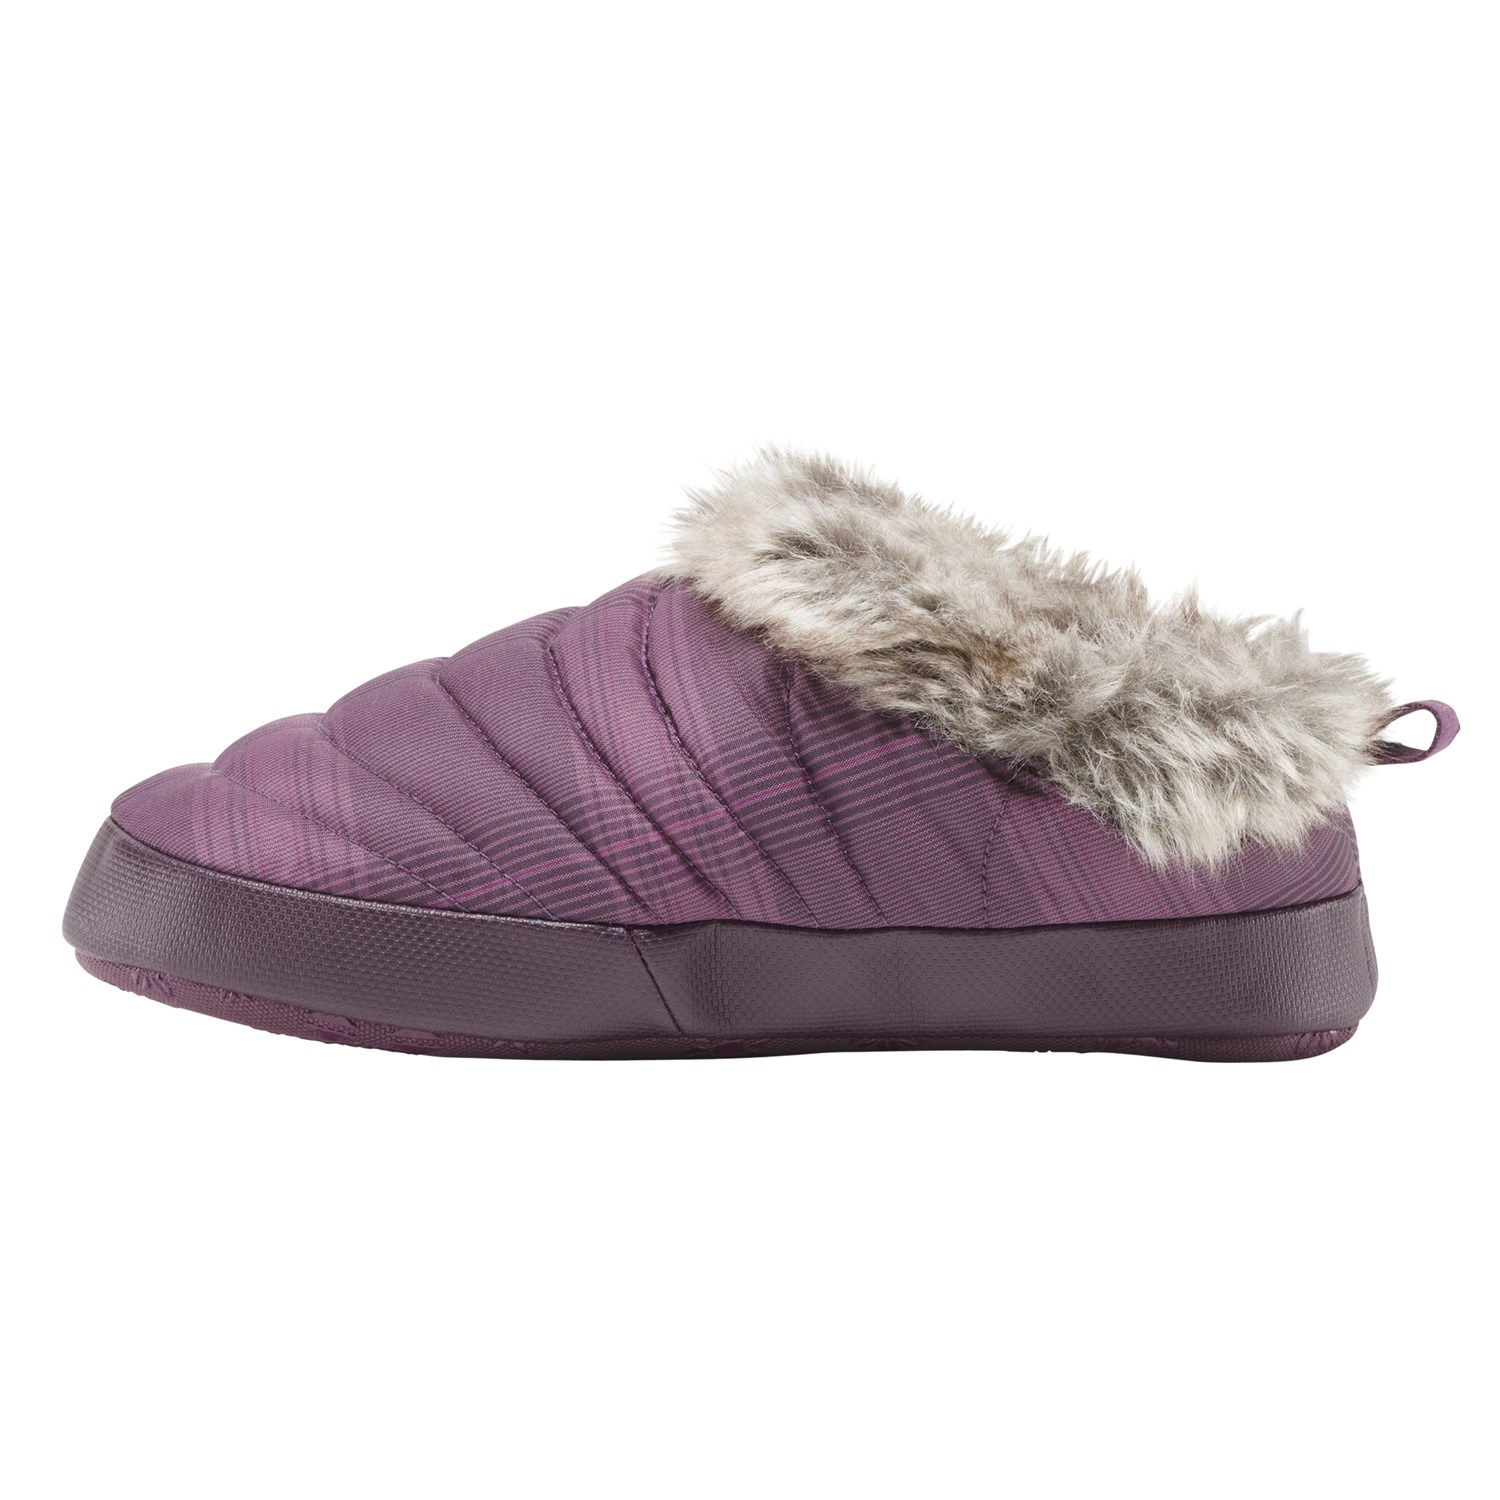 4d54678d9ca The North Face NSE Tent Mule Fur II Slippers - Women s